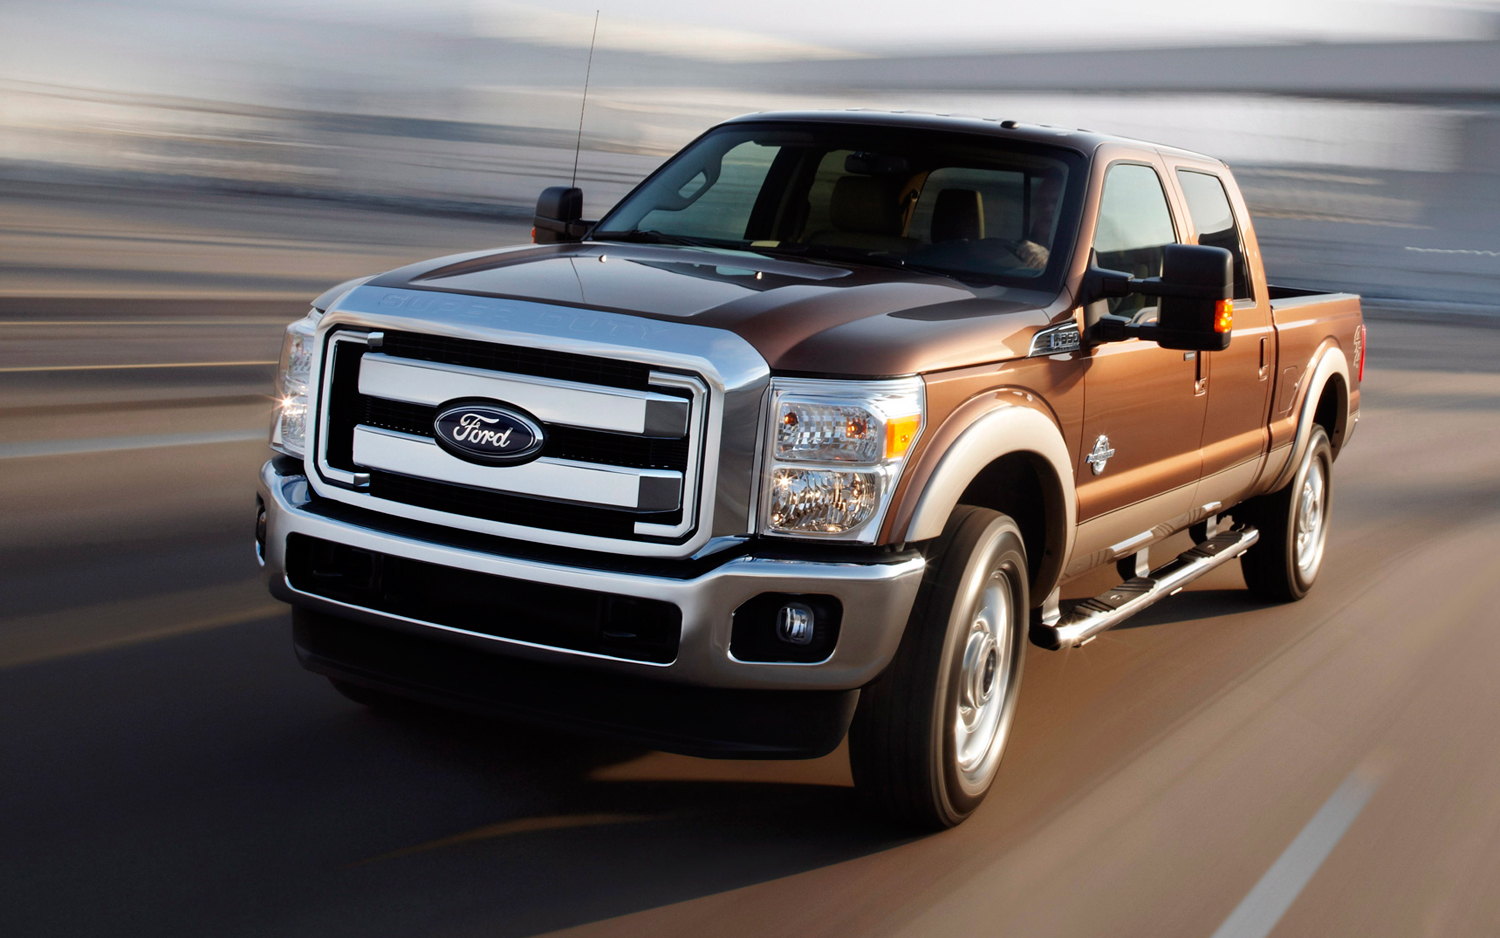 2012 Ford F250 Super Duty King Ranch 4X4 Crew Cab